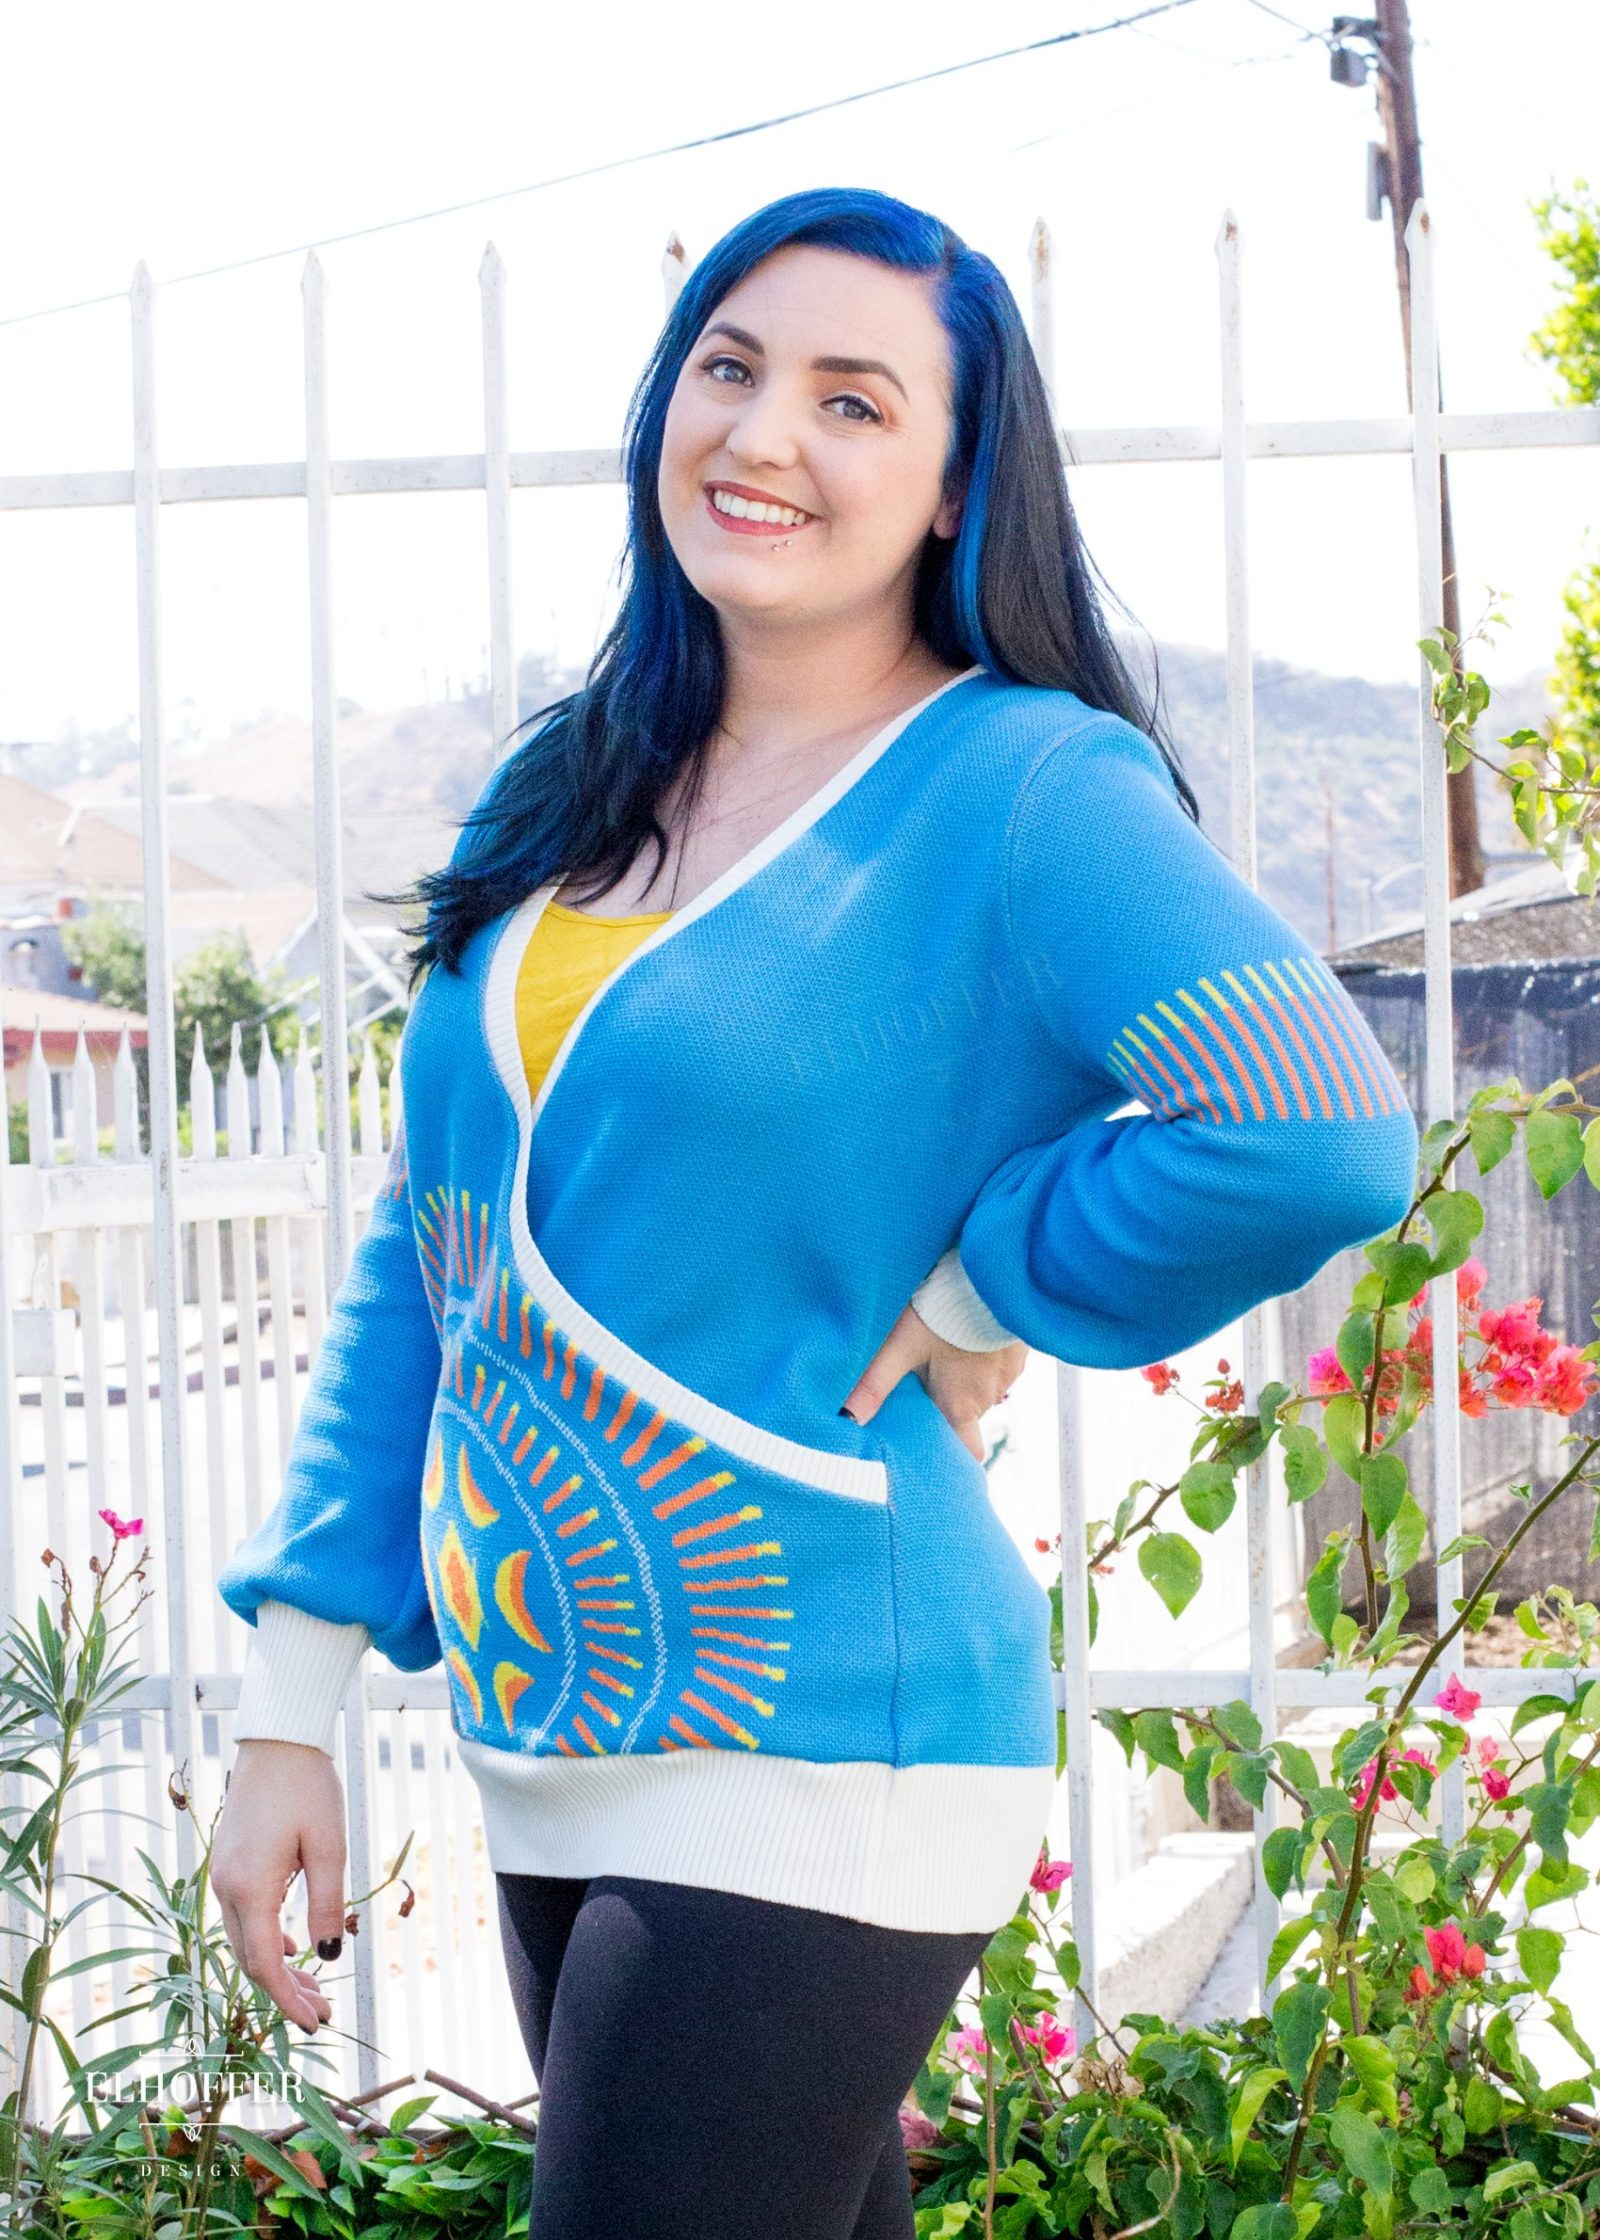 Elhoffer Design - Padme' Amidala Inspired Galactic Eclipse Cross Front Sweater